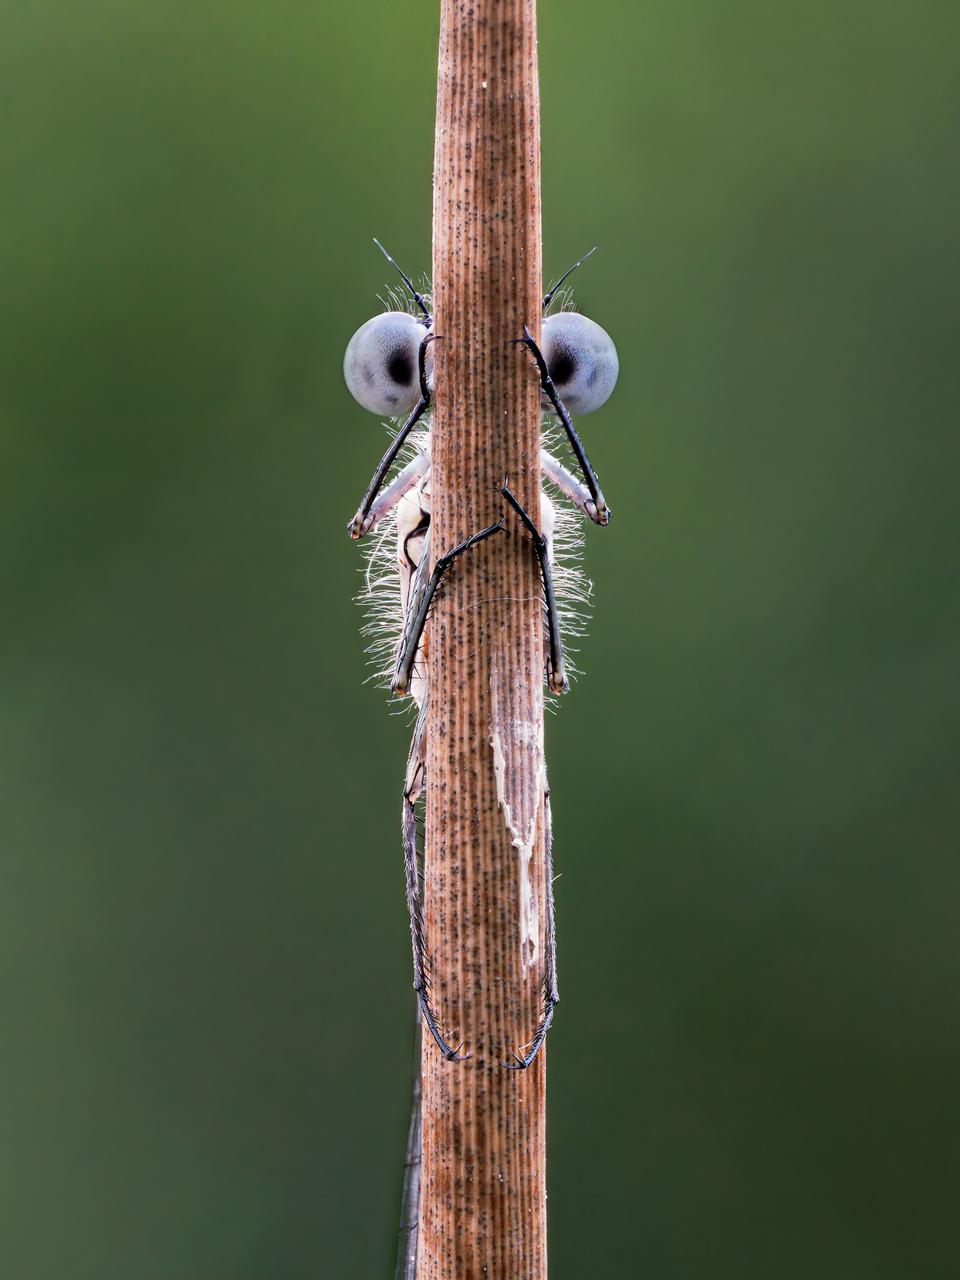 Funny Wild Animals competition: A damselfly that looks like a muppet.